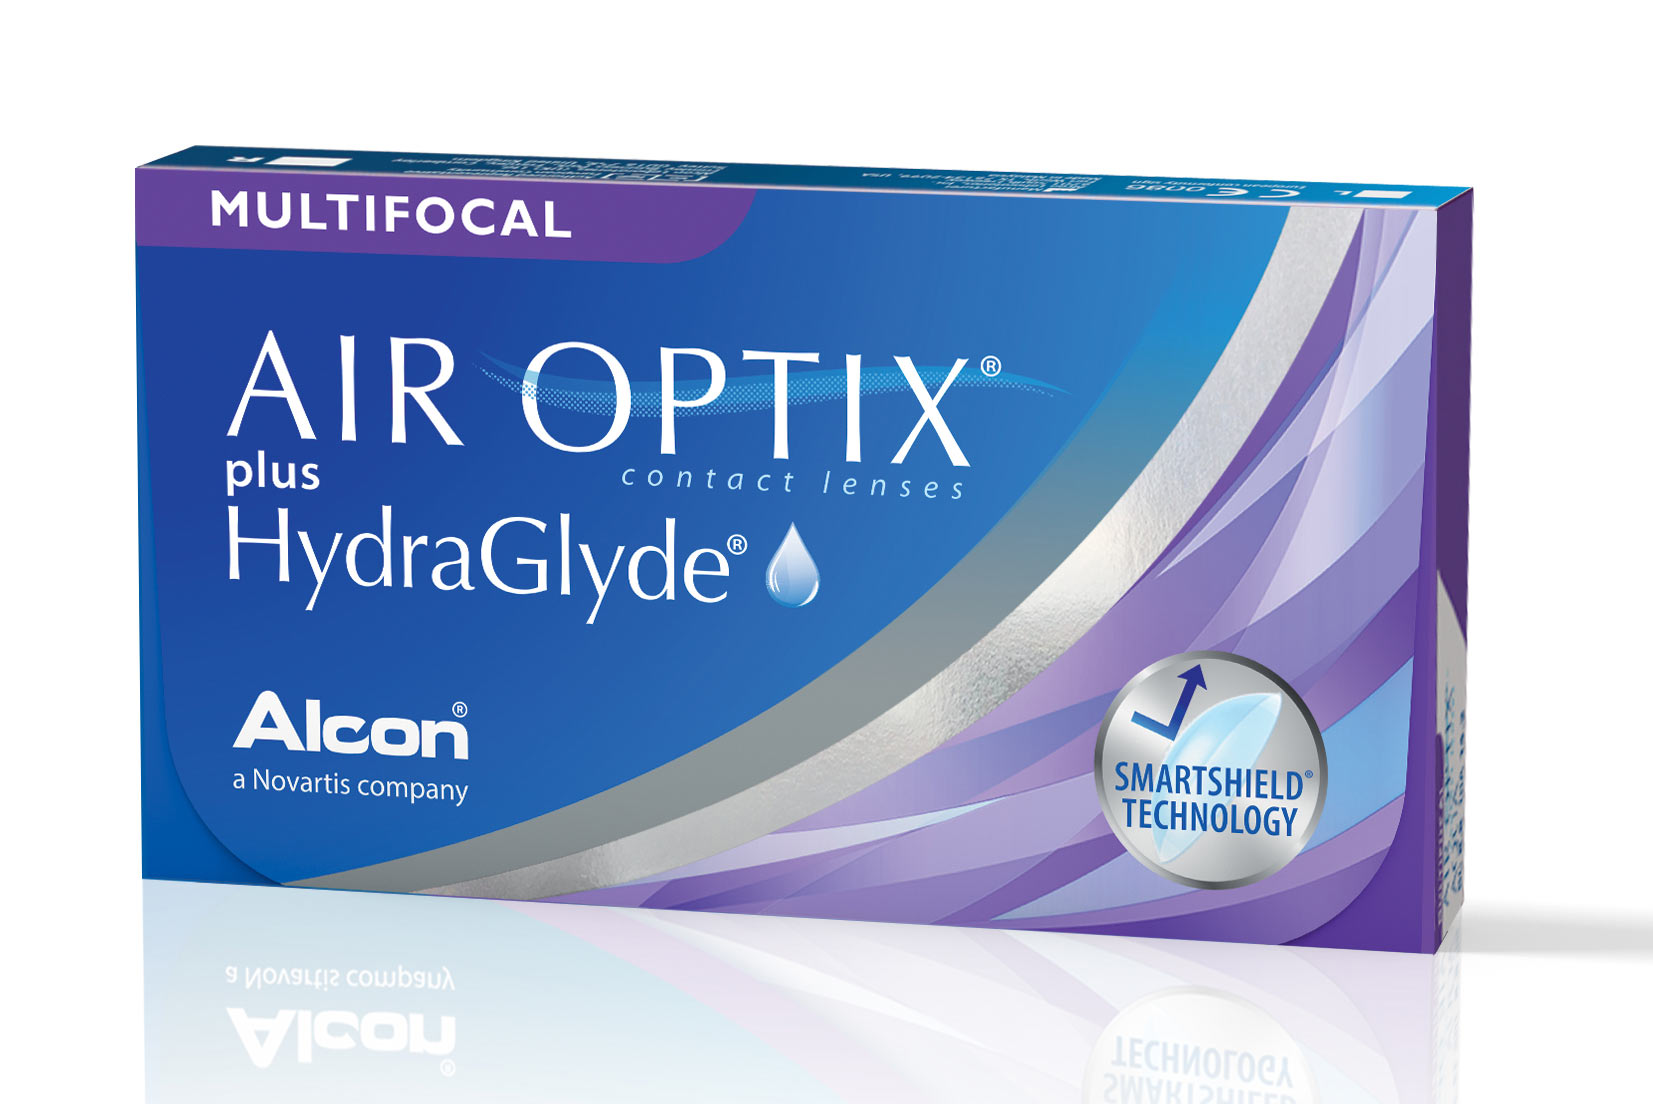 Air Optix Multifocal with Hydraglyde